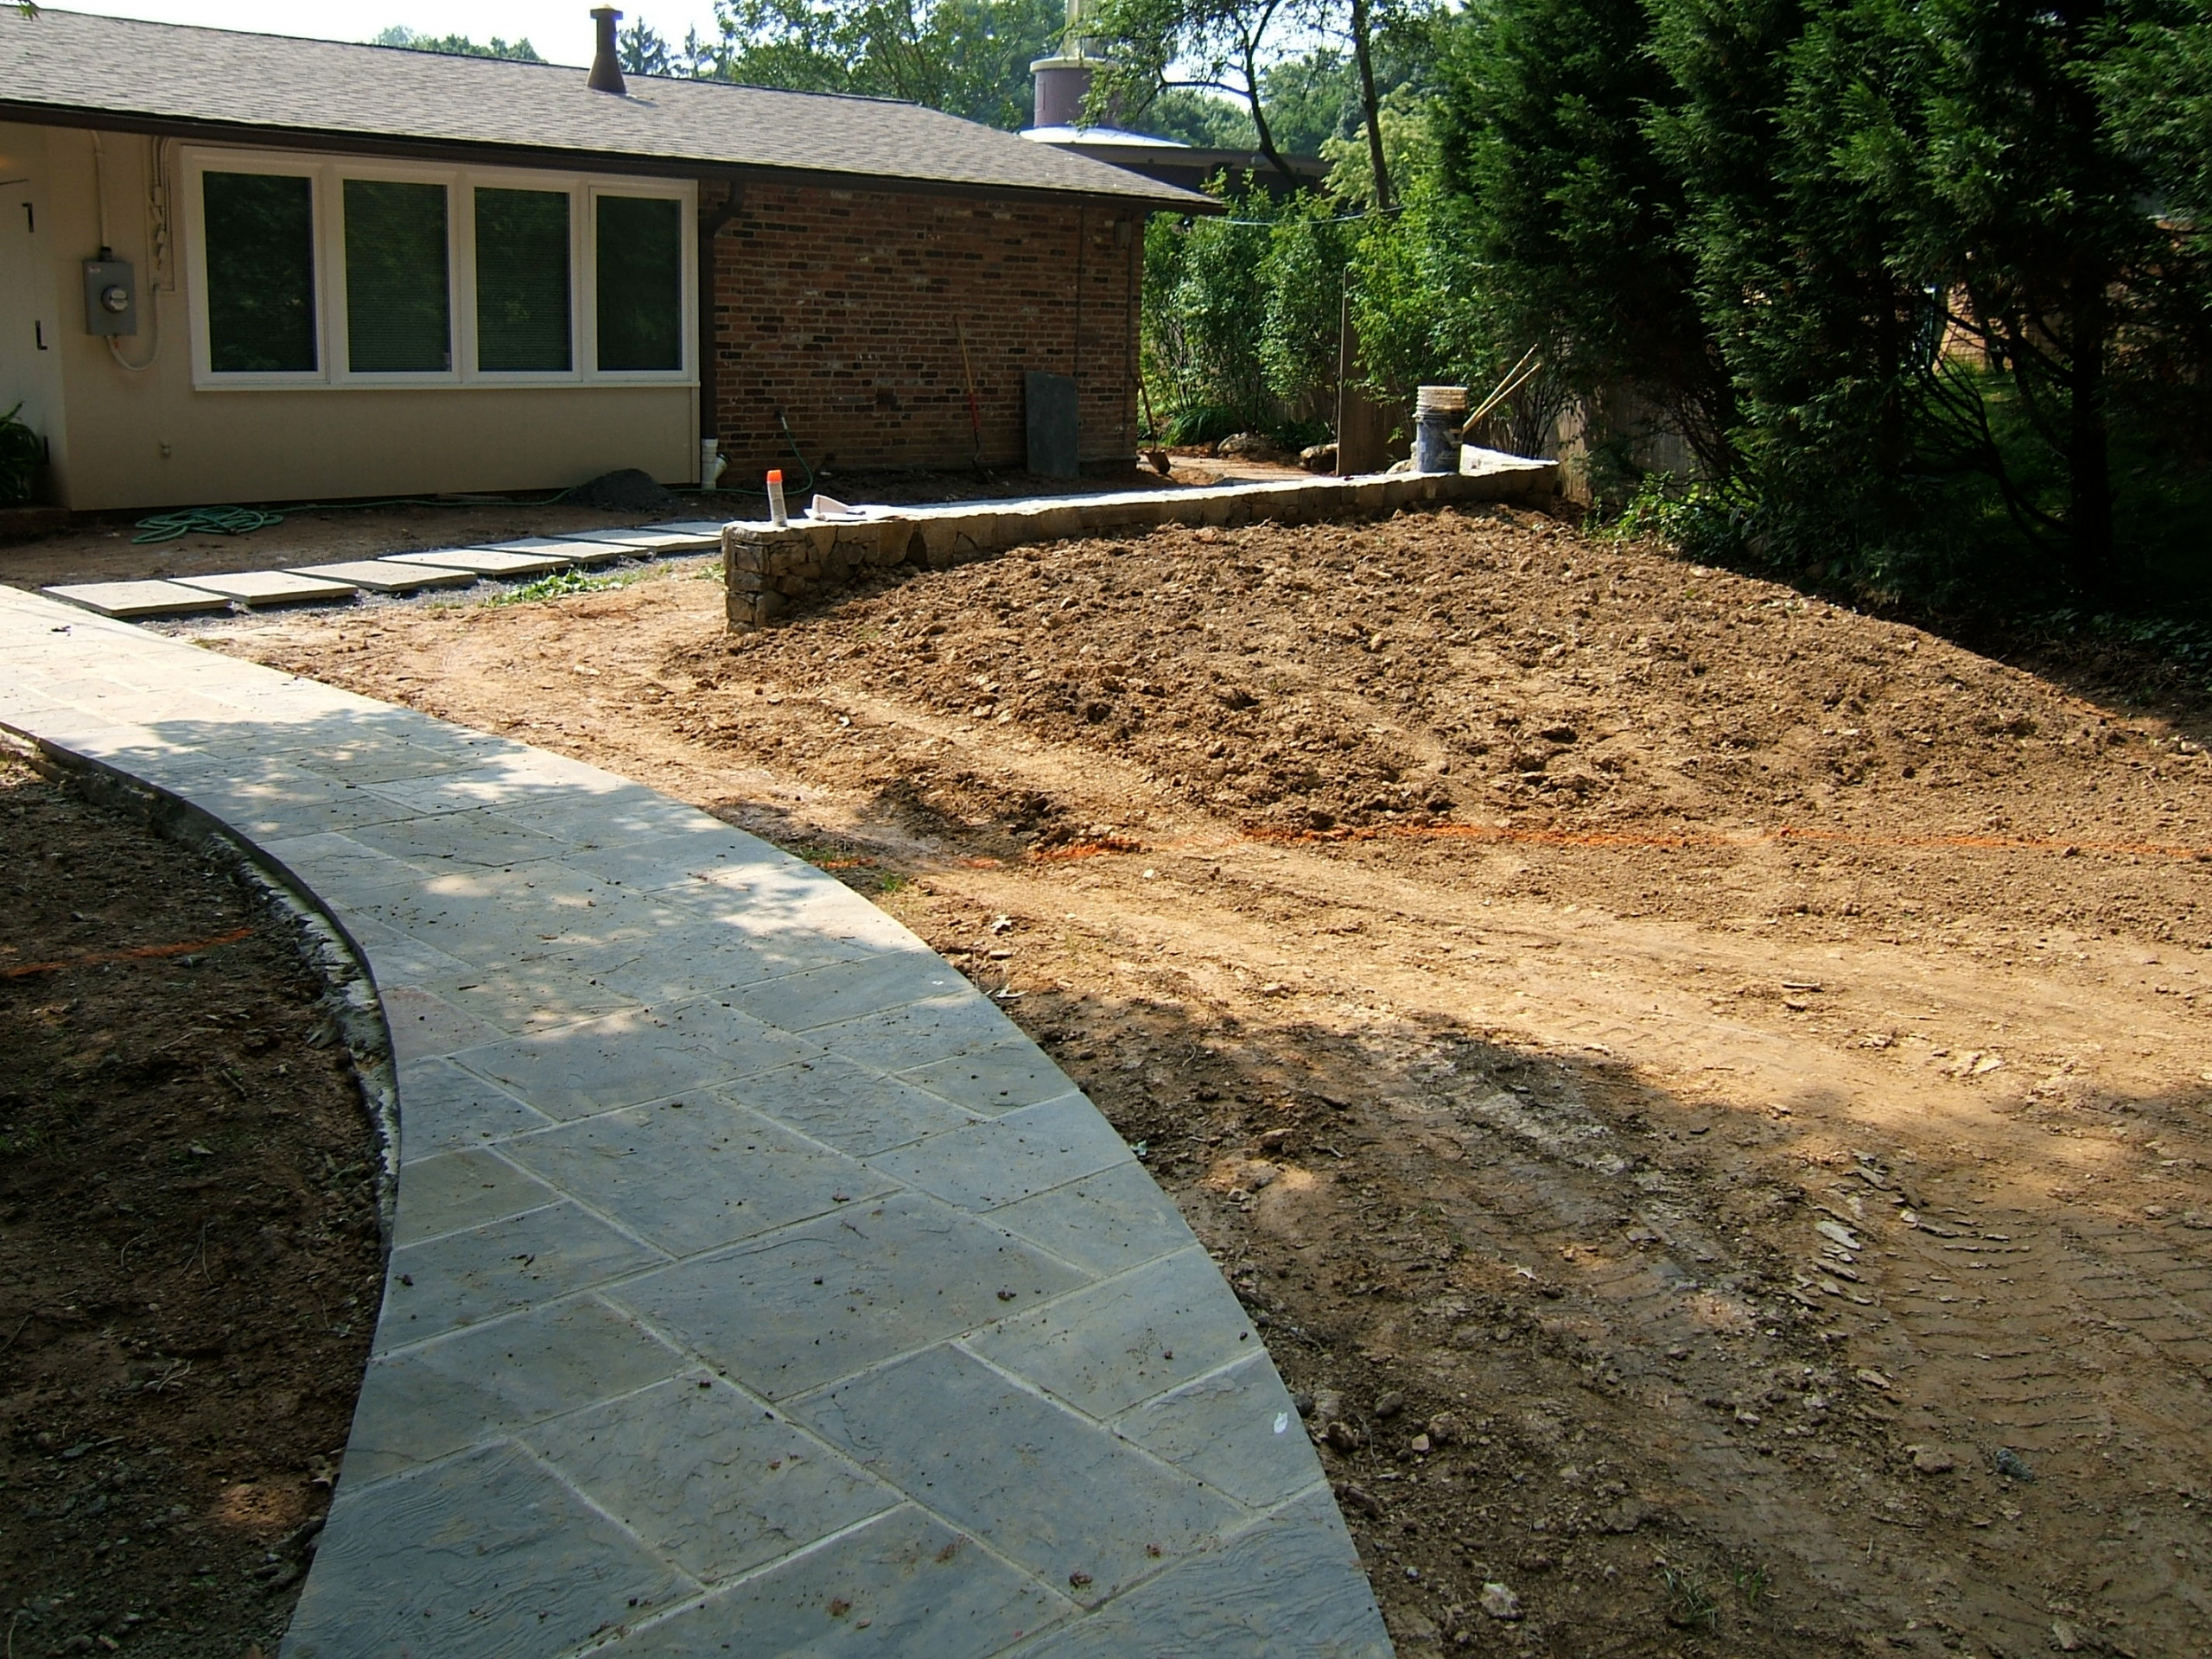 Curved lead walk, path to walled patio with privacy bern